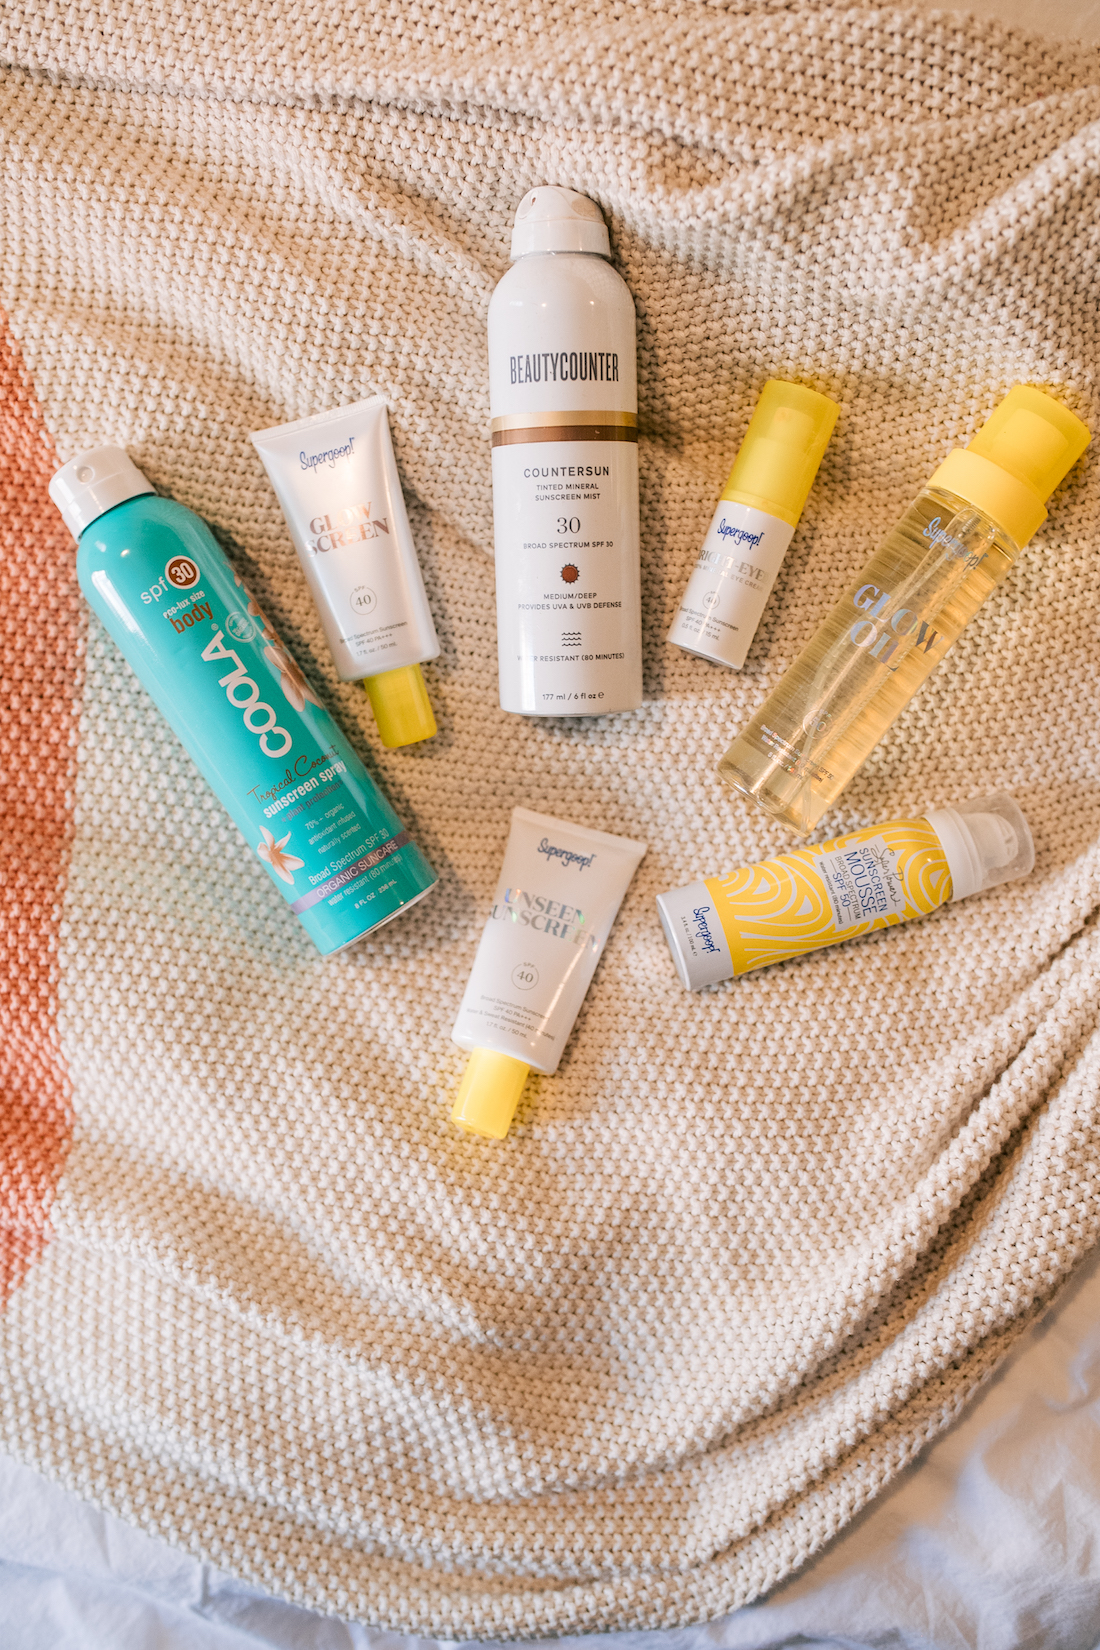 My 7 Favorite SPF Products.